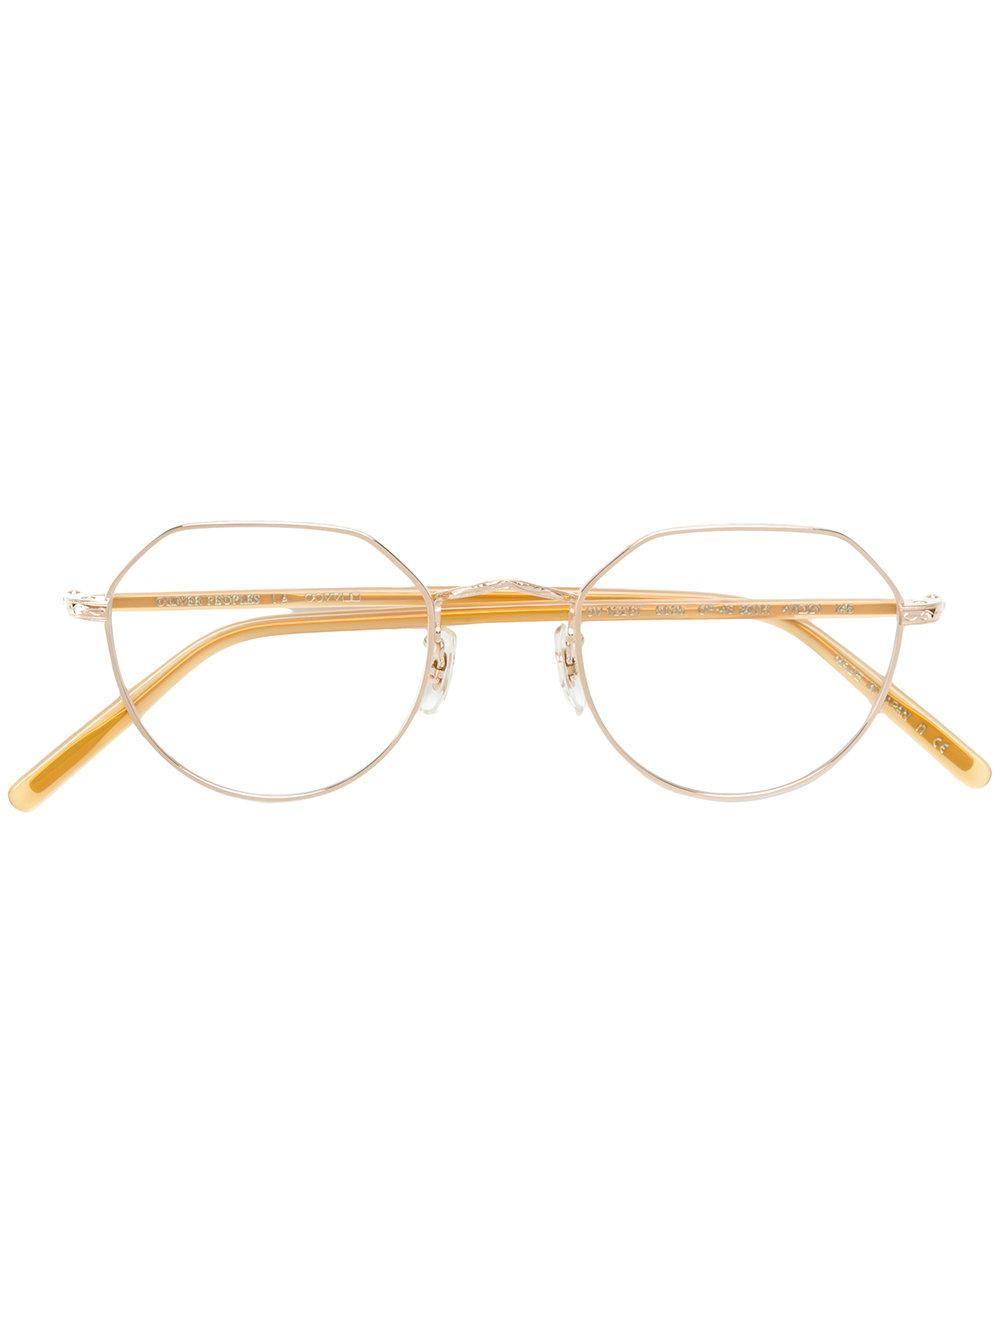 44a53329812 Oliver Peoples  Op-43 30Th  Brille - Metallisch In Metallic